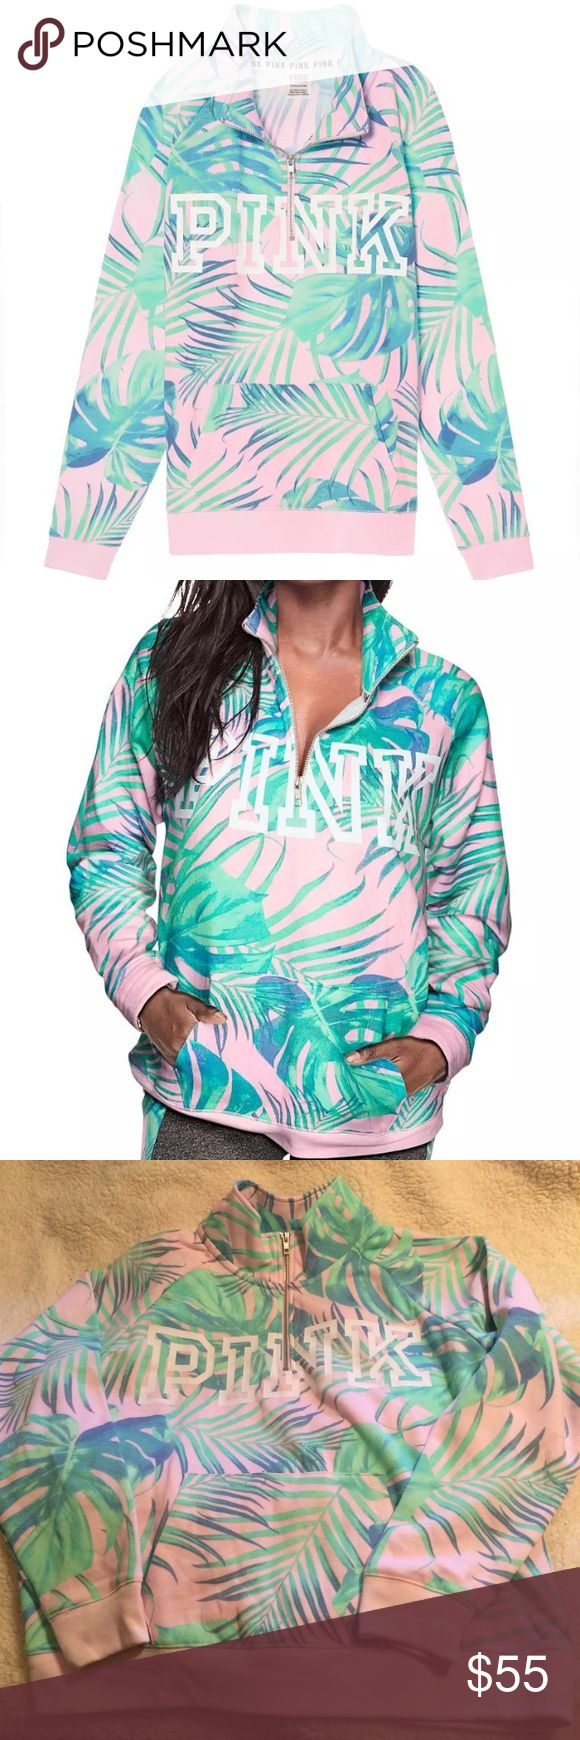 """Pink Pastel Palm Tropical 1/4 Zip Pullover VS NWT Victoria's Secret PINK Campus 1/4 Quarter Zip Pullover Sweatshirt Jacket Top in Allover Pastel Palm Tree Tropical Print (BHQ) with Light Aqua Teal Green Blue Palm Tree Leaves & Light Pastel Baby Pink Background as well as PINK logo in white on the front.  This super comfy quarter-zip will definitely be in high rotation this season! Super soft fleece 25.5"""" length Relaxed Fit Logo graphics Mock neck collar Quarter-zip closure Imported…"""